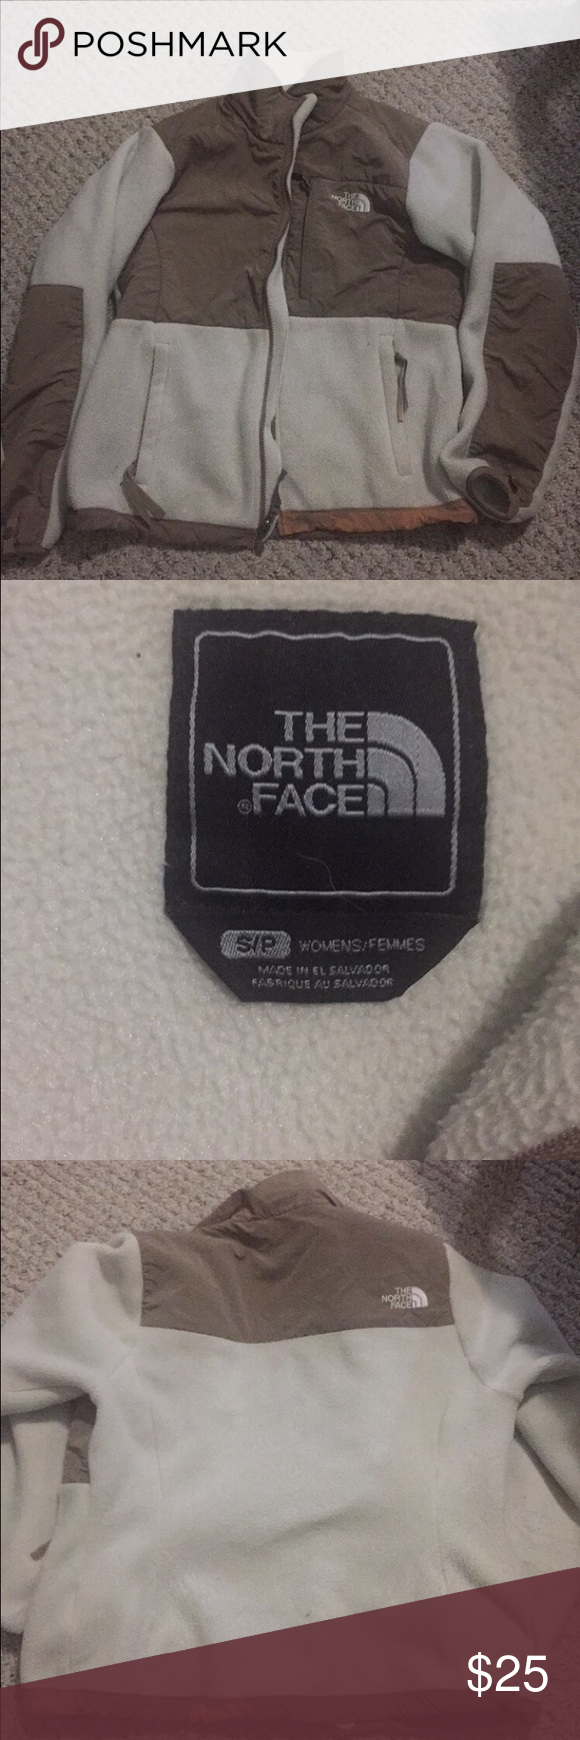 North face jacket In good condition, only flaw is that it was accidentally bleached on the bottom. North Face Jackets & Coats